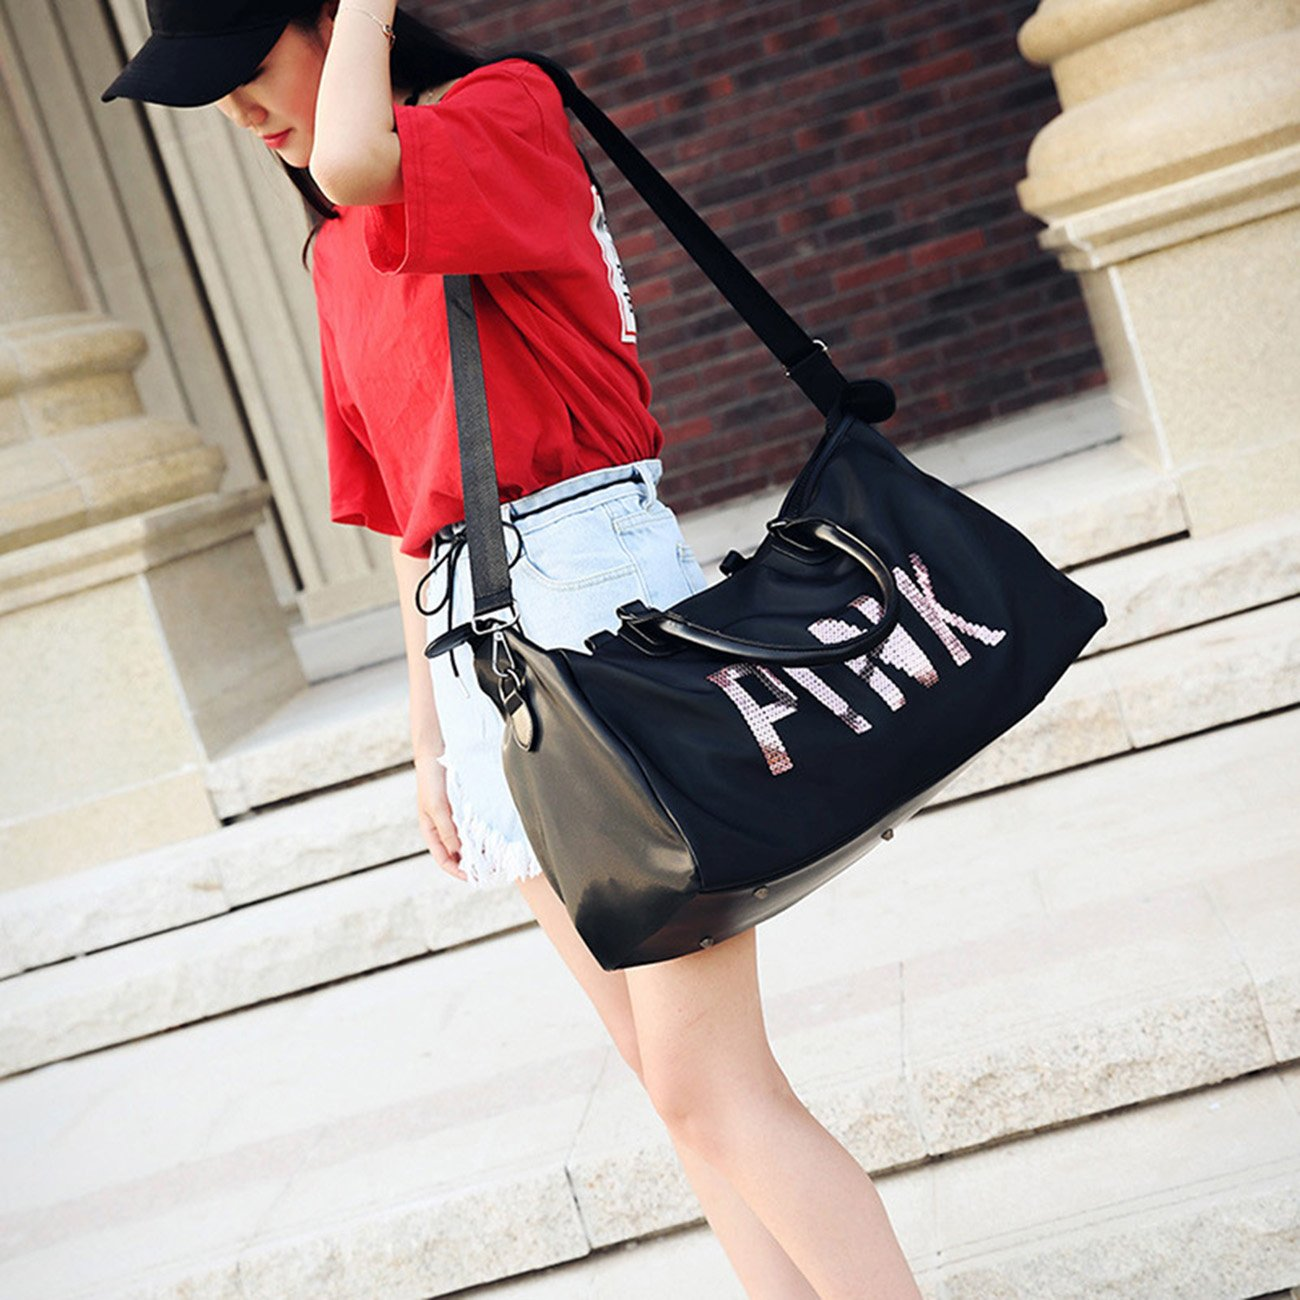 THEE High Capacity Waterproof Sports Bag Travel Tote Bag by THEE (Image #4)